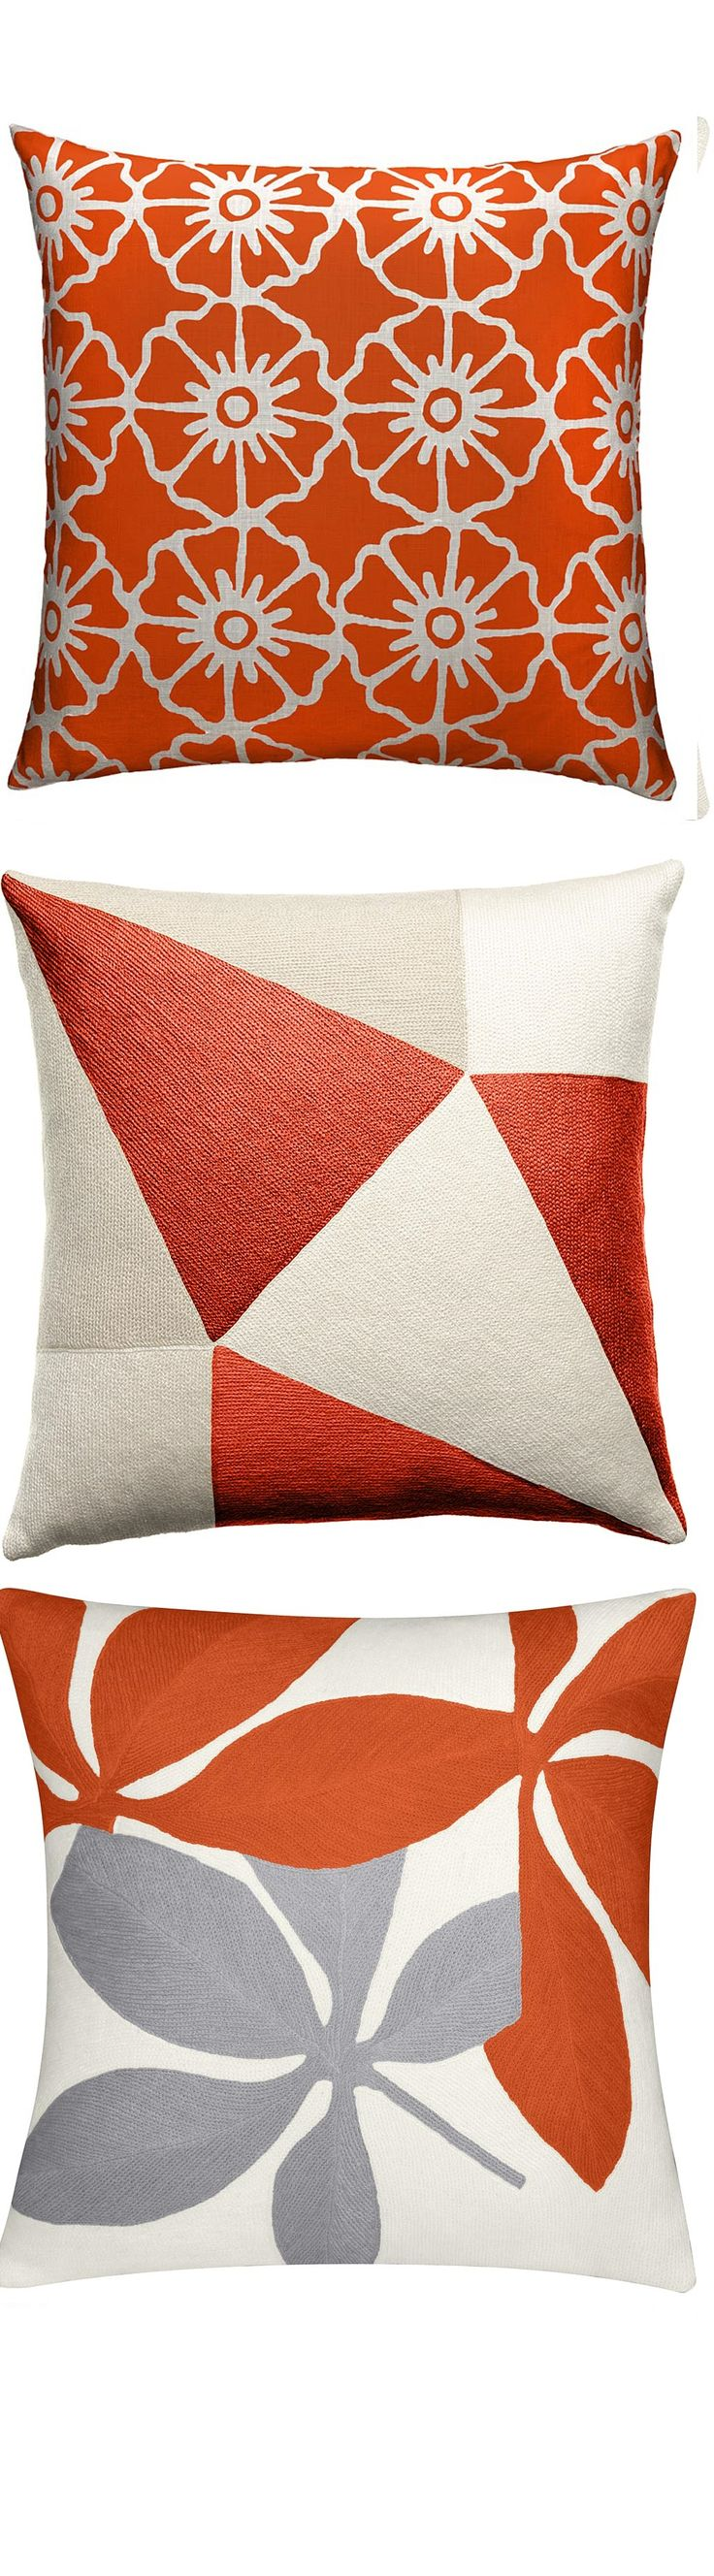 Best 18  Orange throw pillows ideas on Pinterest | Orange throws ...